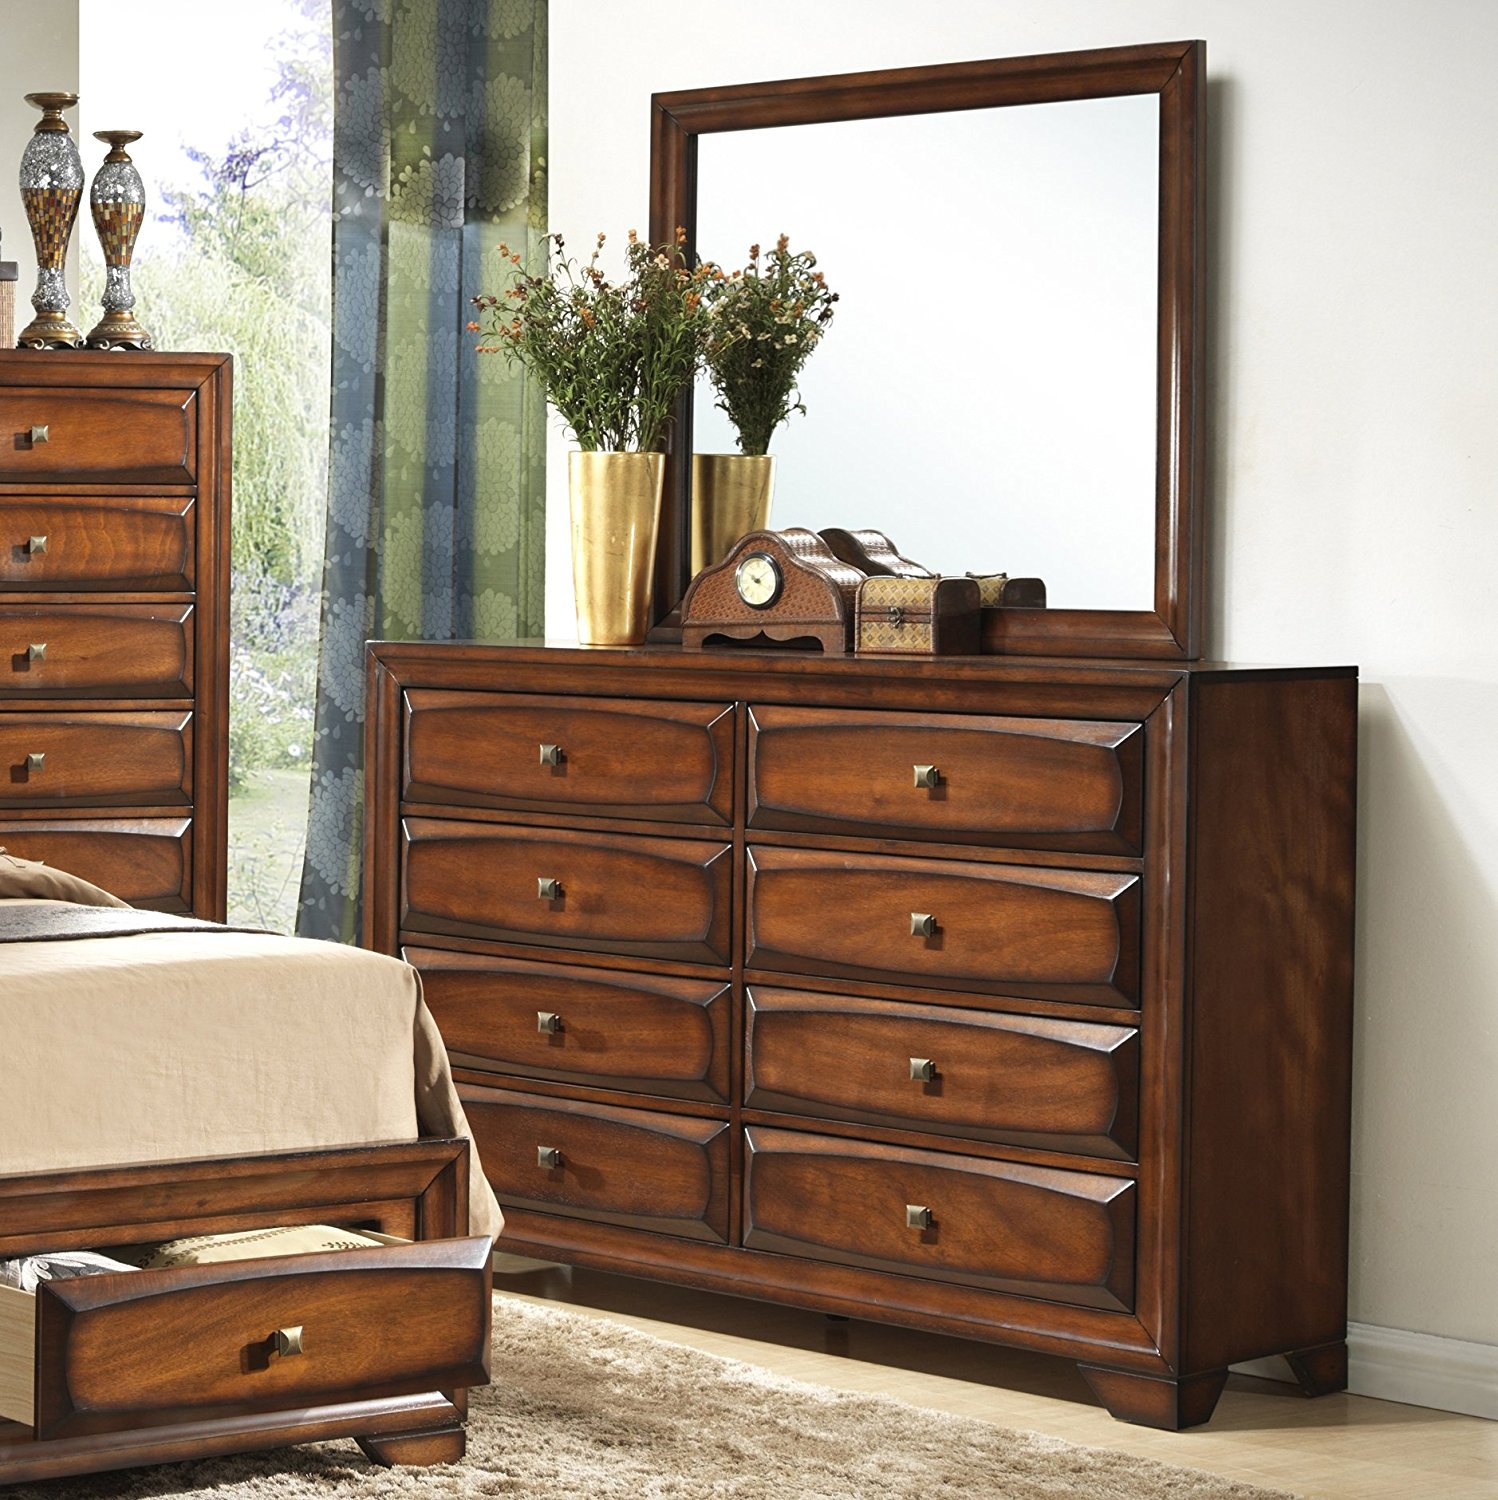 Roundhill Furniture Oakland 139 Antique Oak Finish Wood 6 Drawers Dresser & Mirror